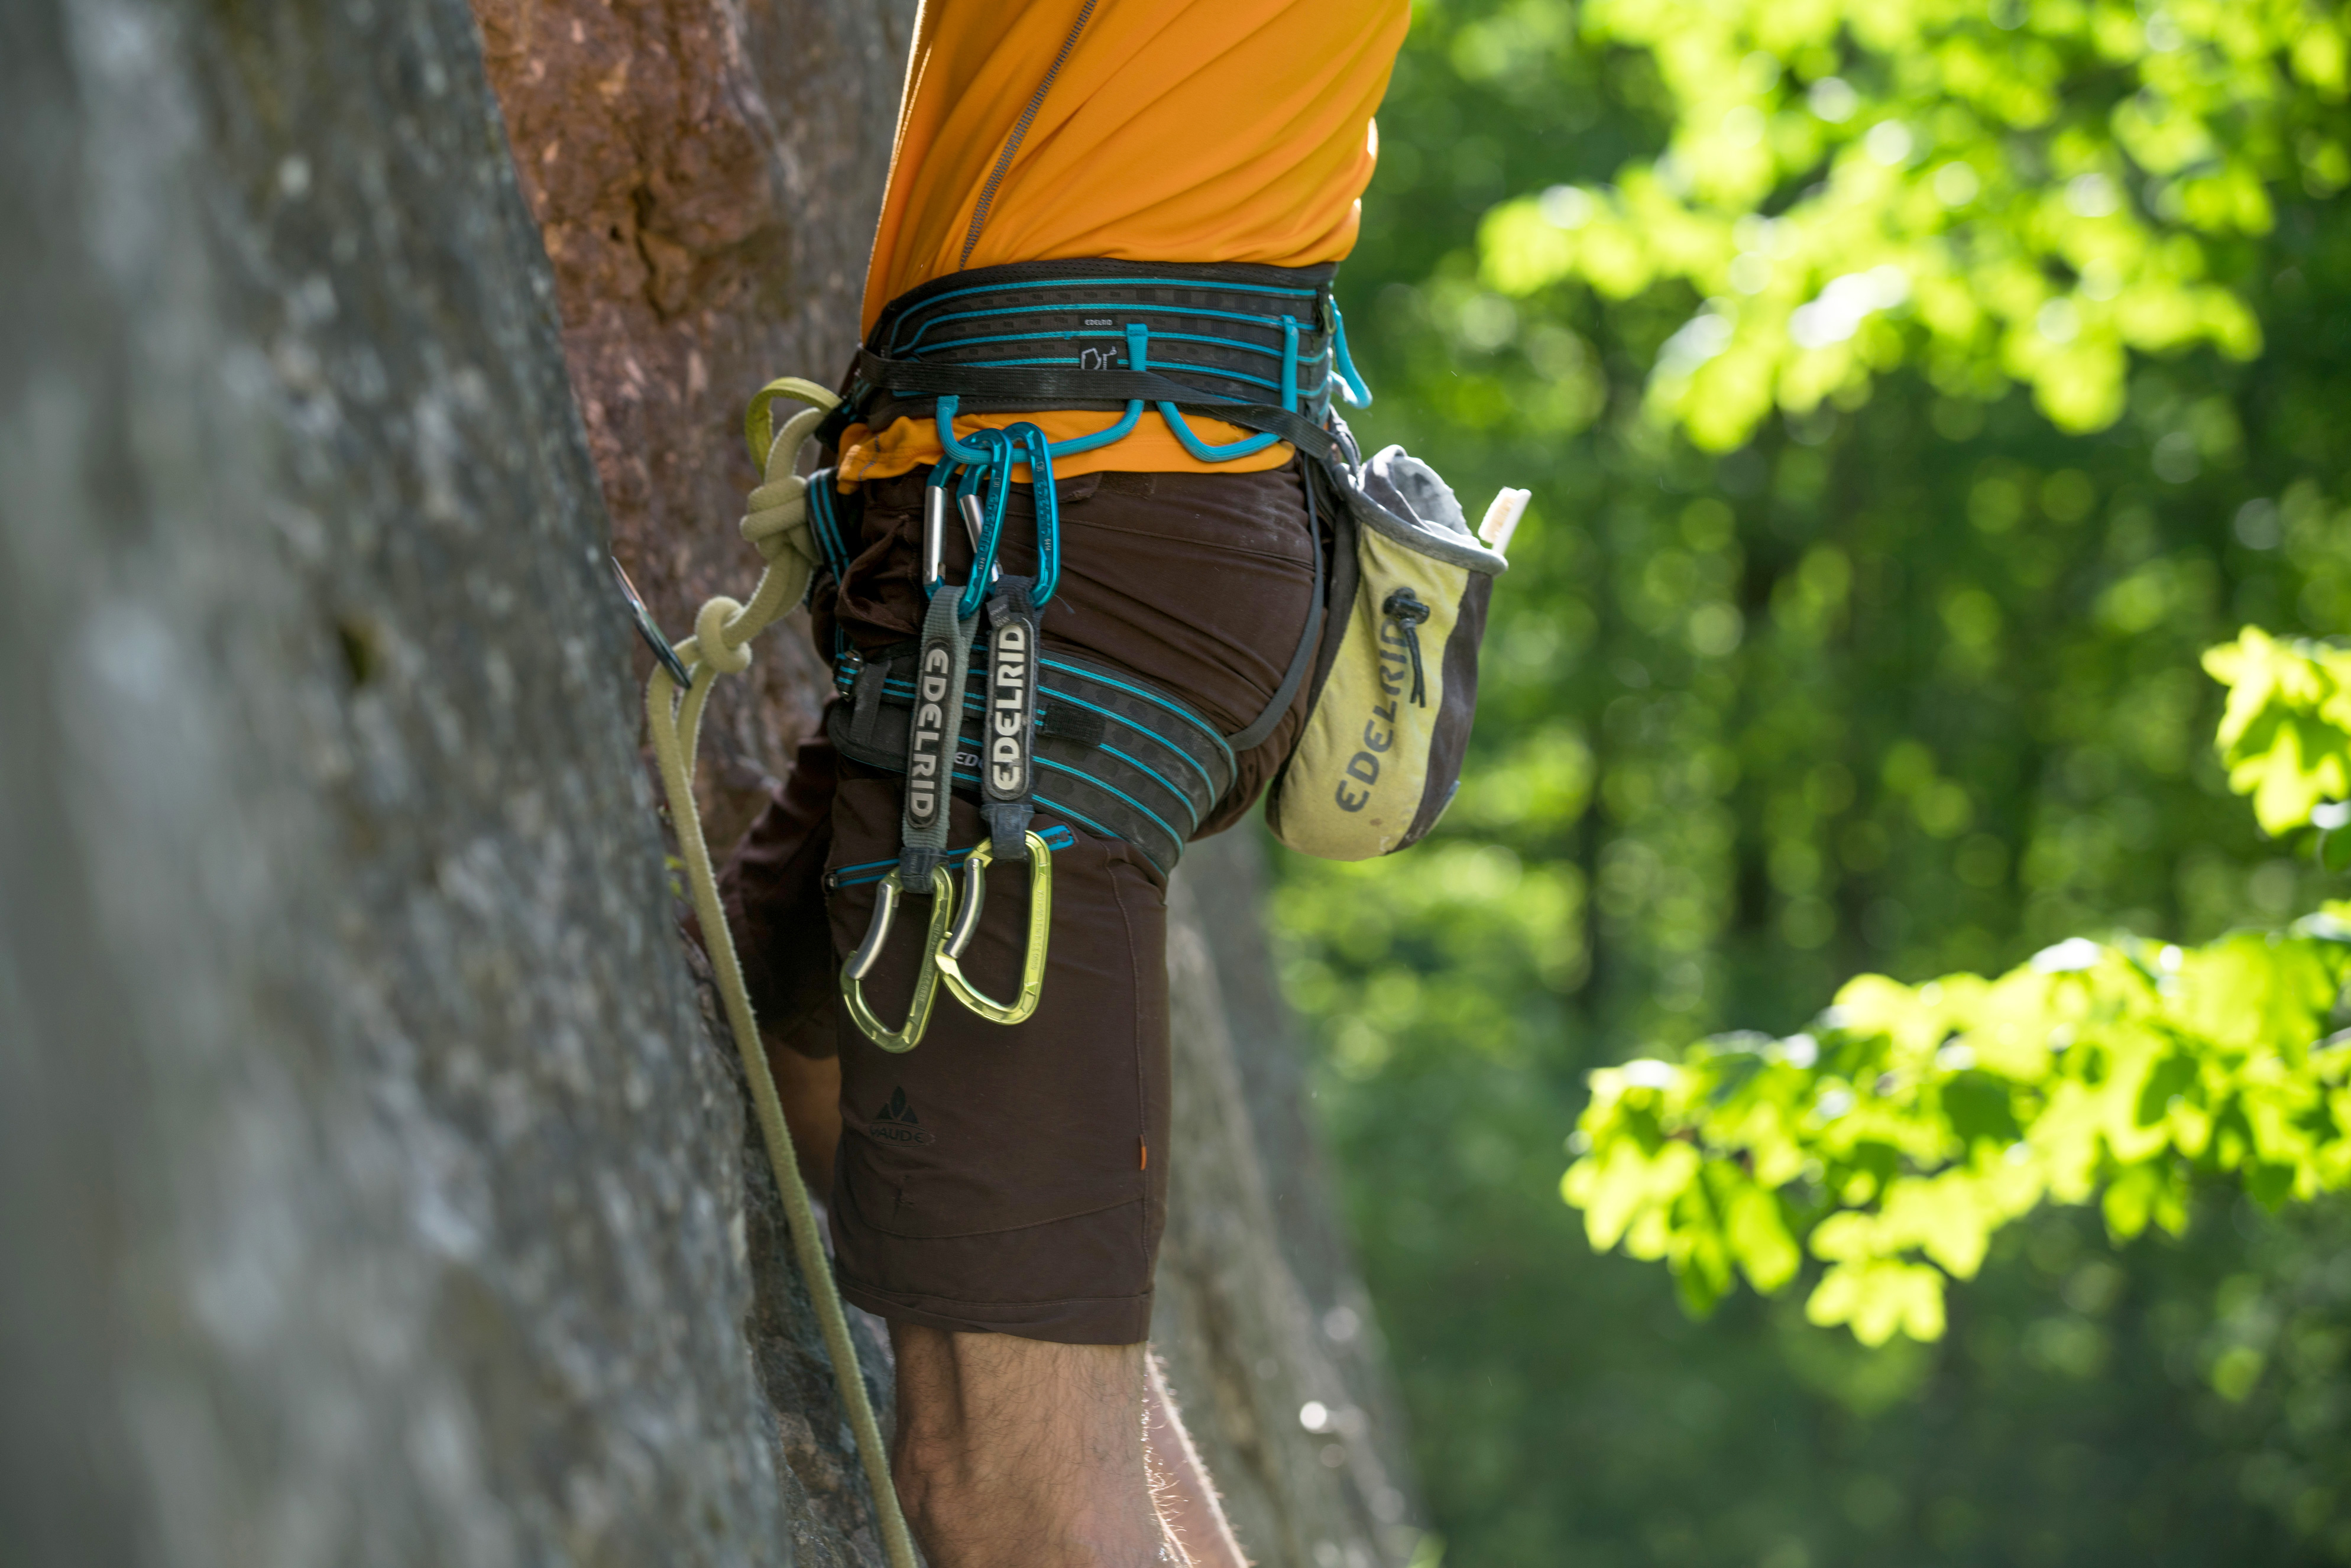 Ultra Light Klettergurt : Edelrid orion klettergurt im test